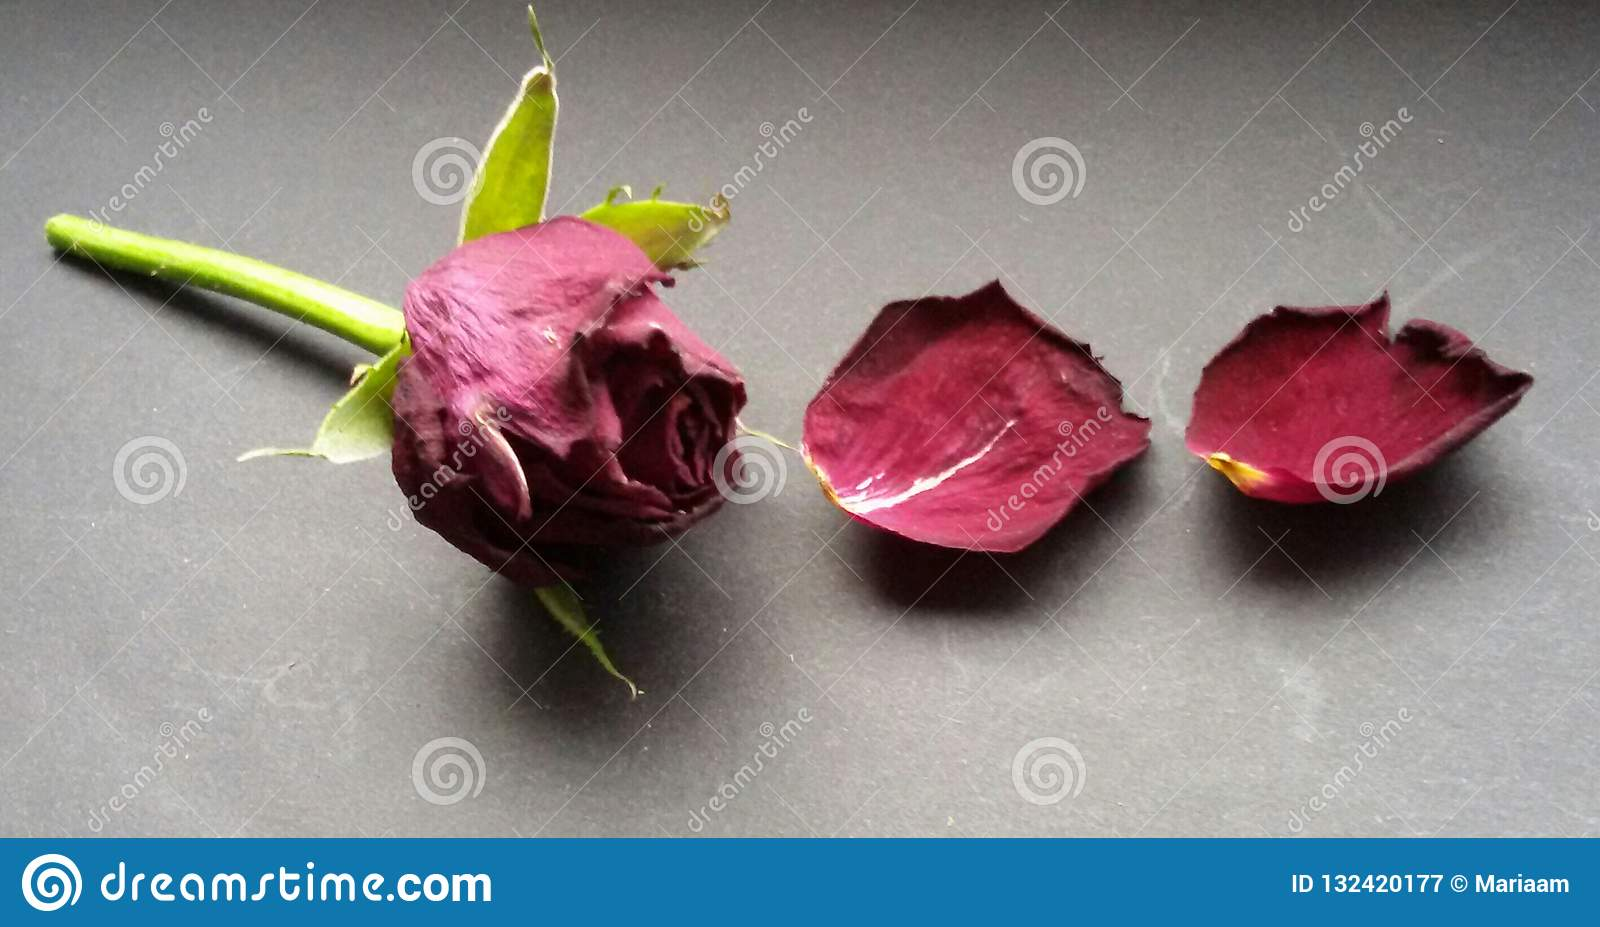 Rose and petals. Closeup of dried red rose. Withered flower over dark background.